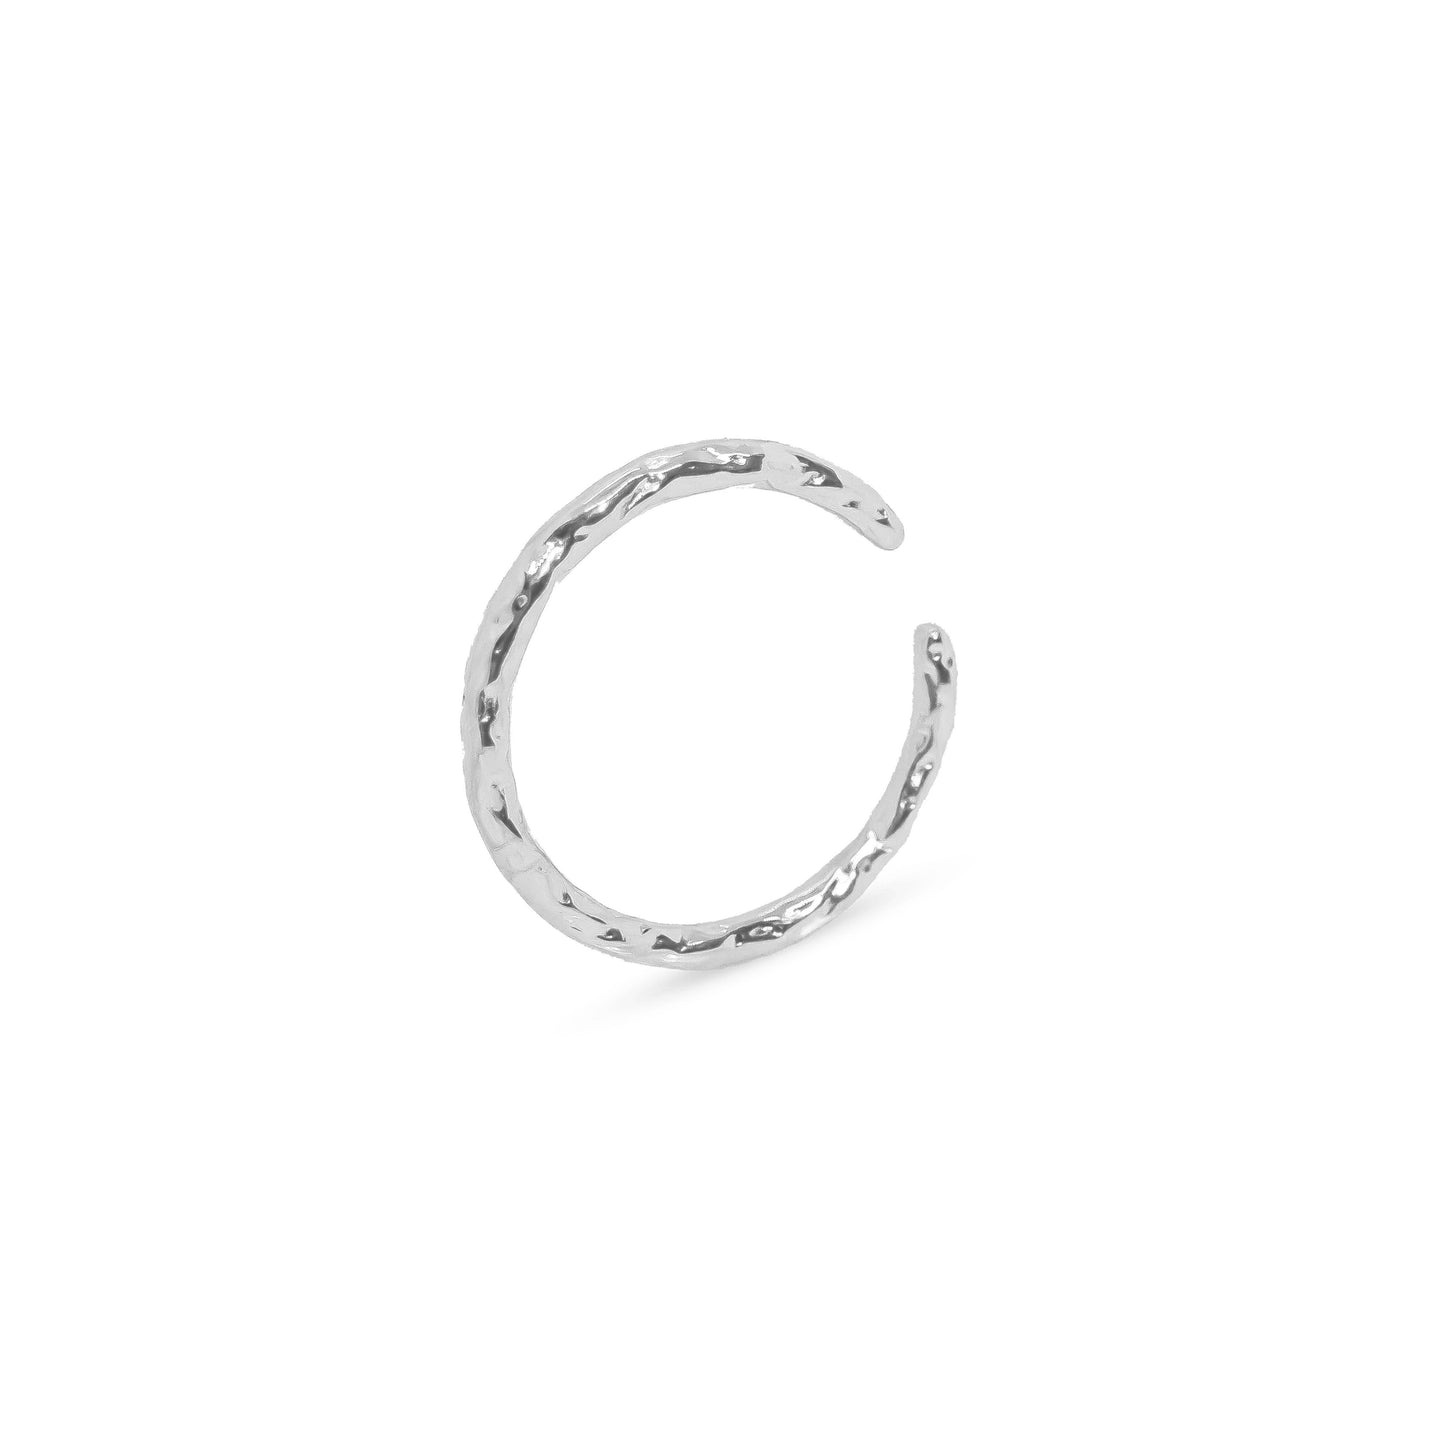 chelm silver ring